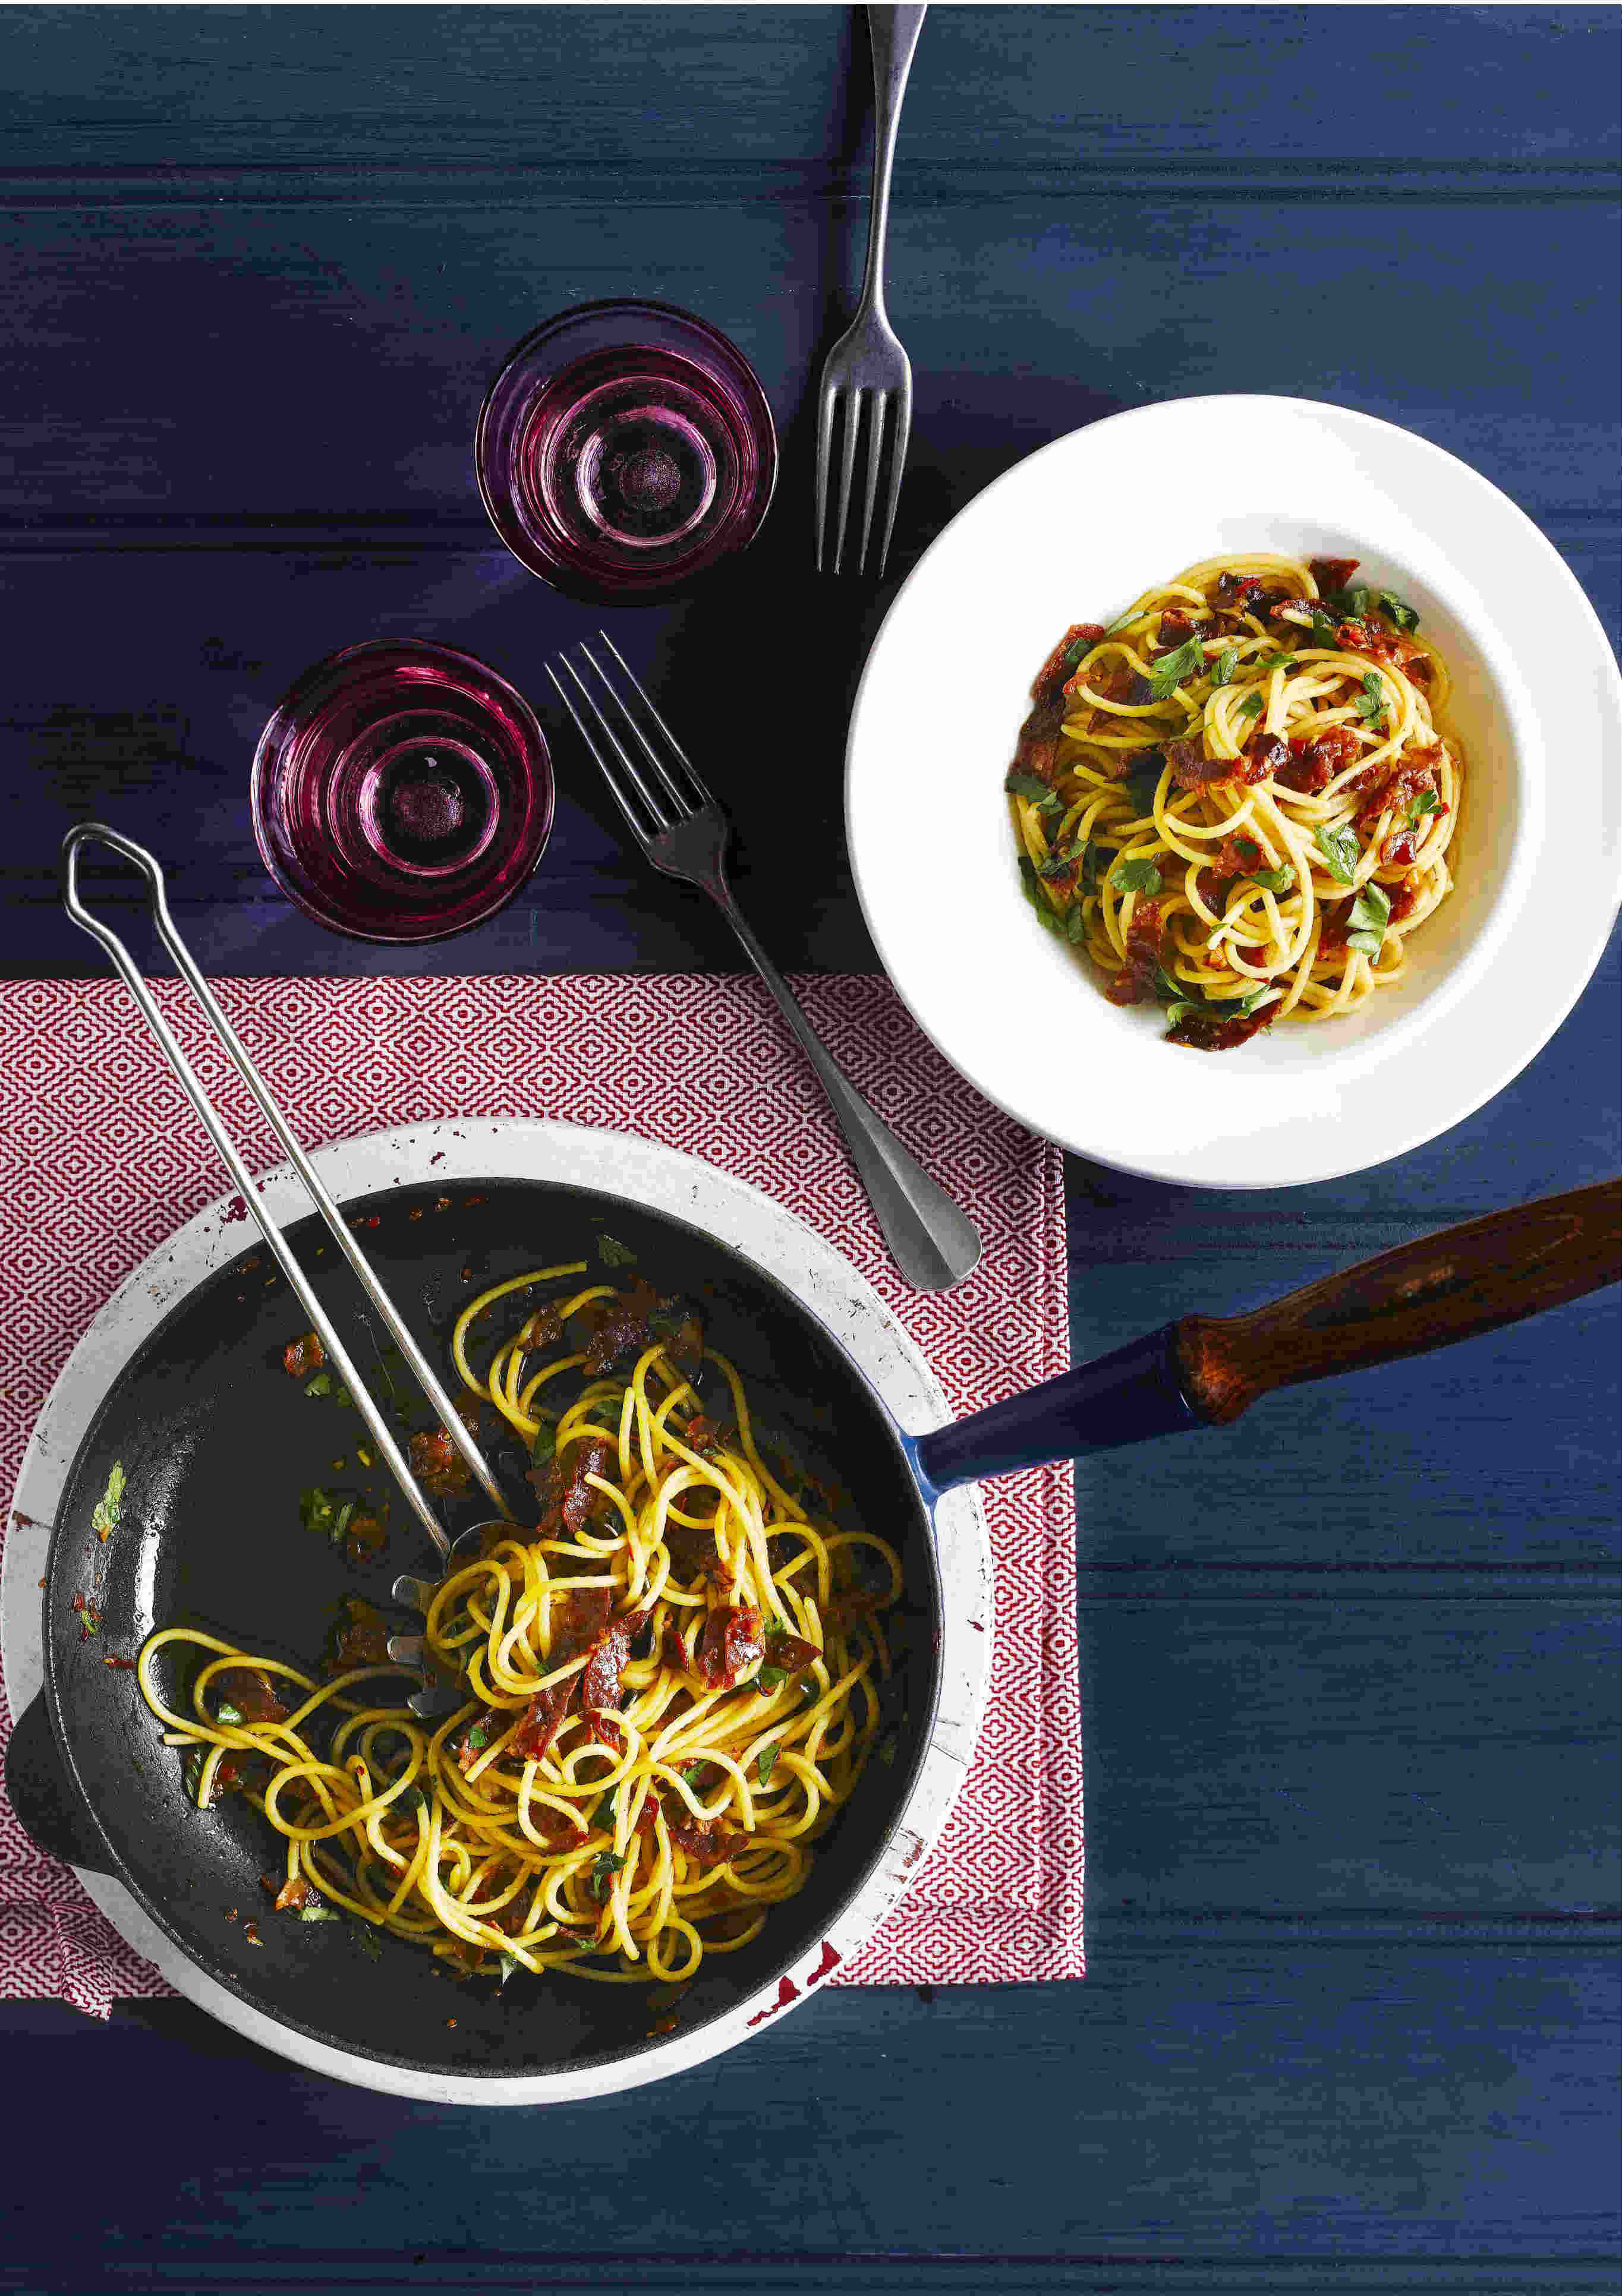 Chorizo Pasta Recipe With Olive Oil and Parsley